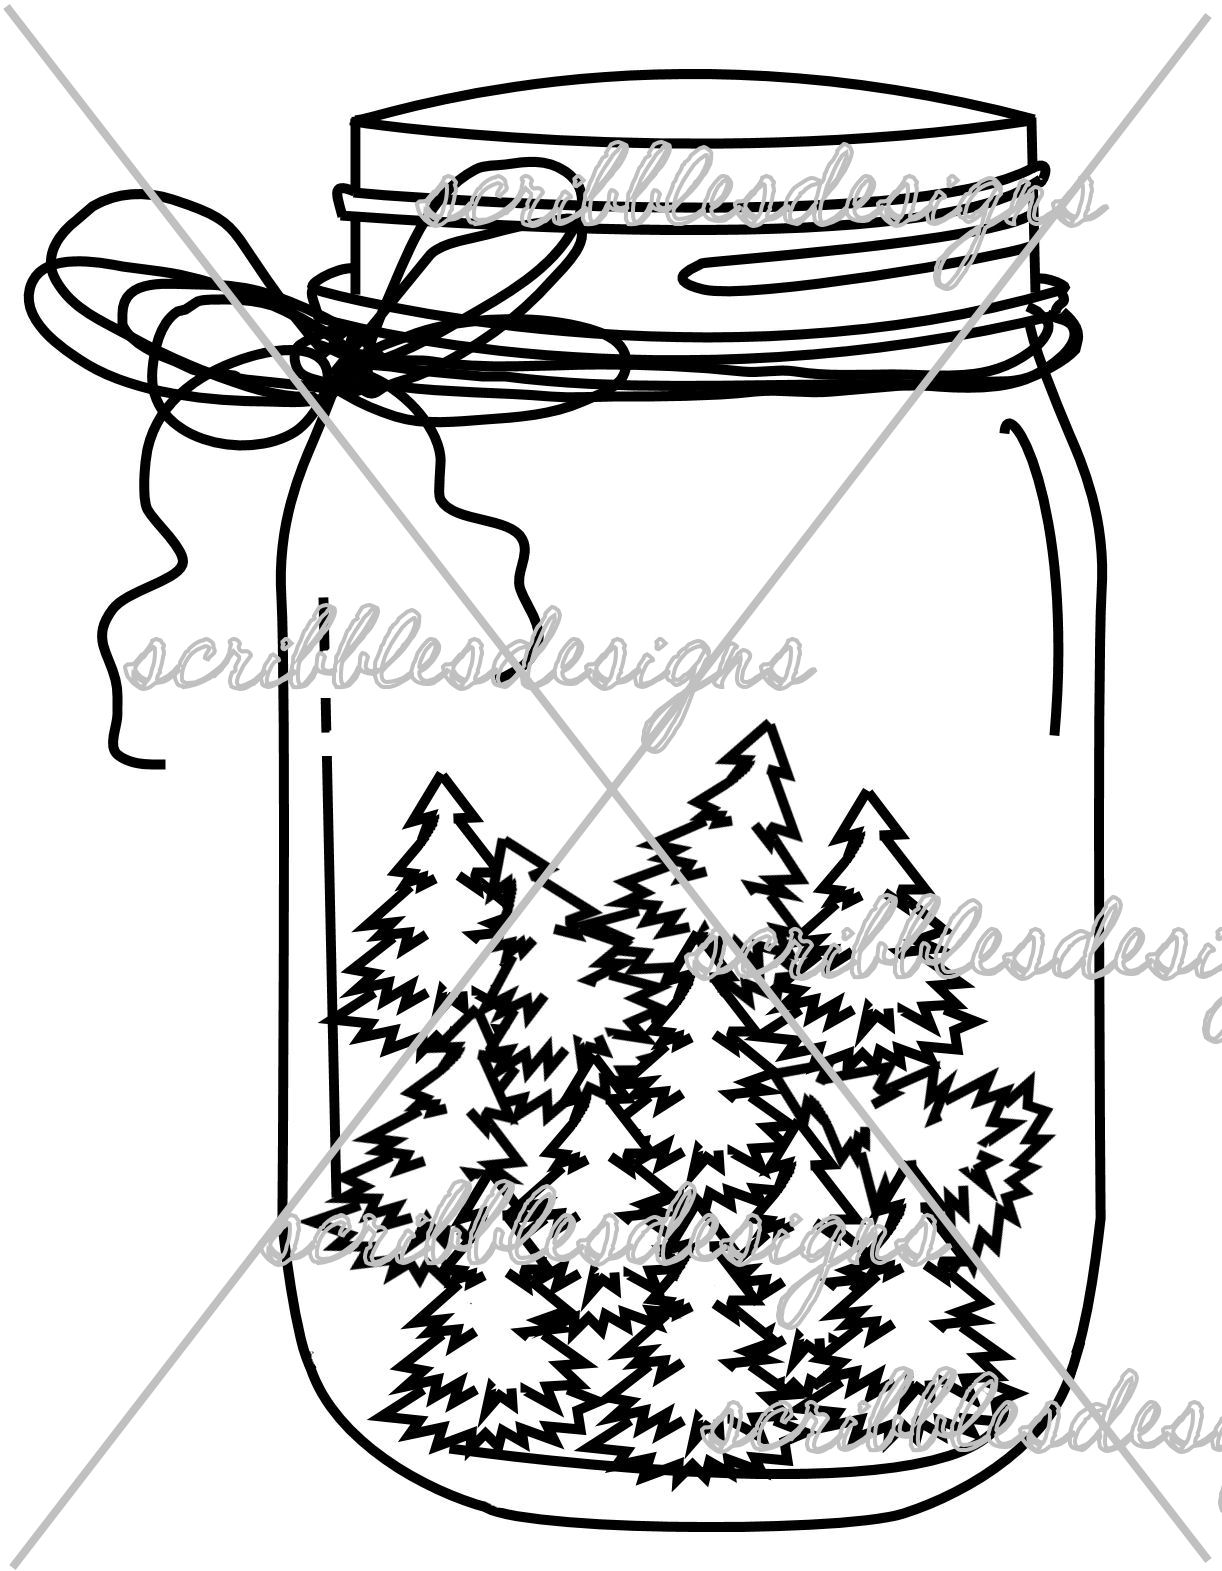 http://buyscribblesdesigns.blogspot.ca/2015/03/894-holiday-tree-mason-jar-300.html